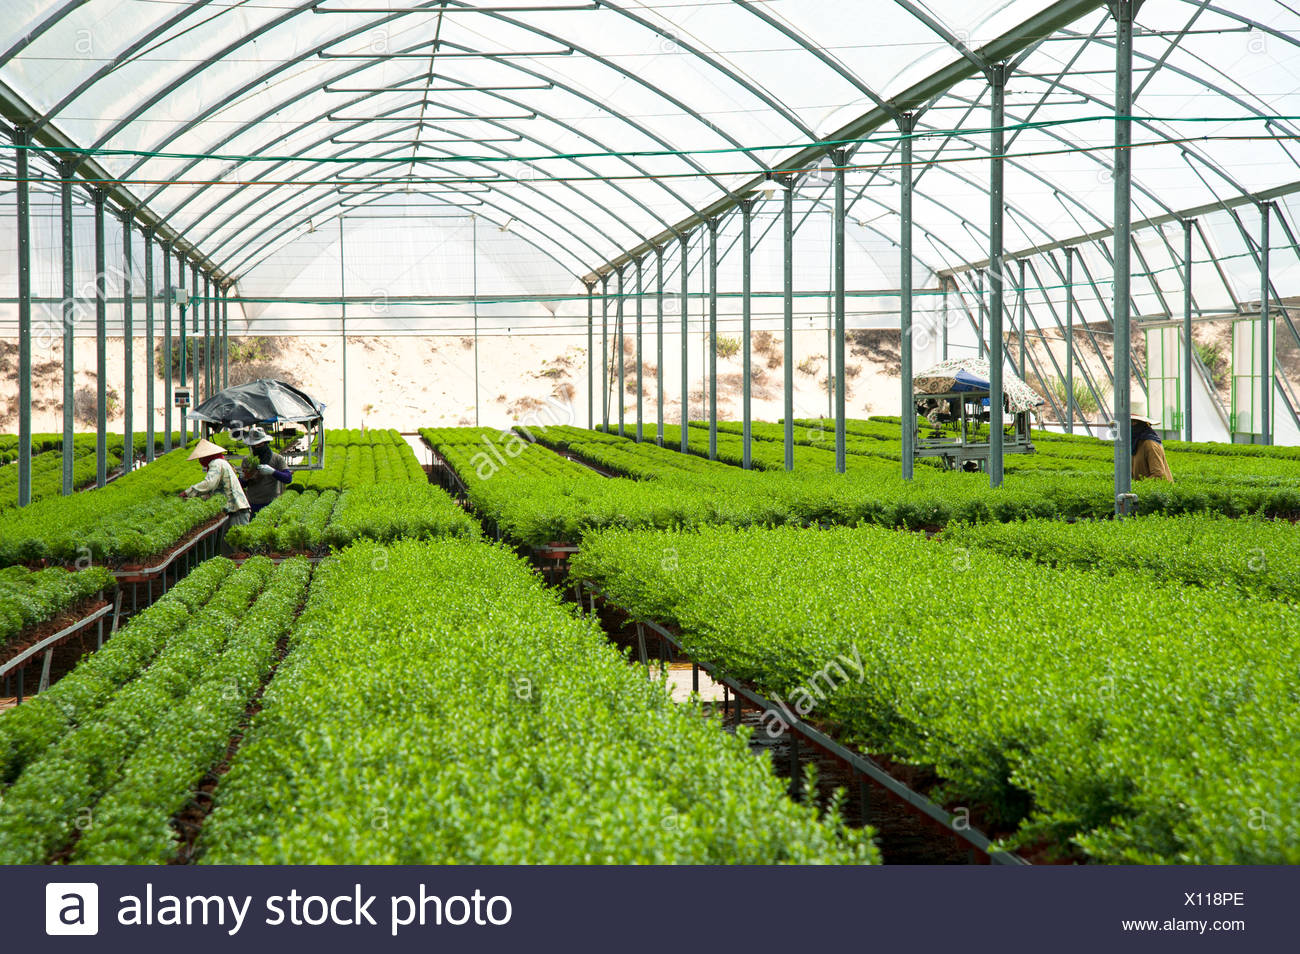 Magnificent Israel Aravah Desert Plants In A Greenhouse Stock Photo Home Interior And Landscaping Oversignezvosmurscom